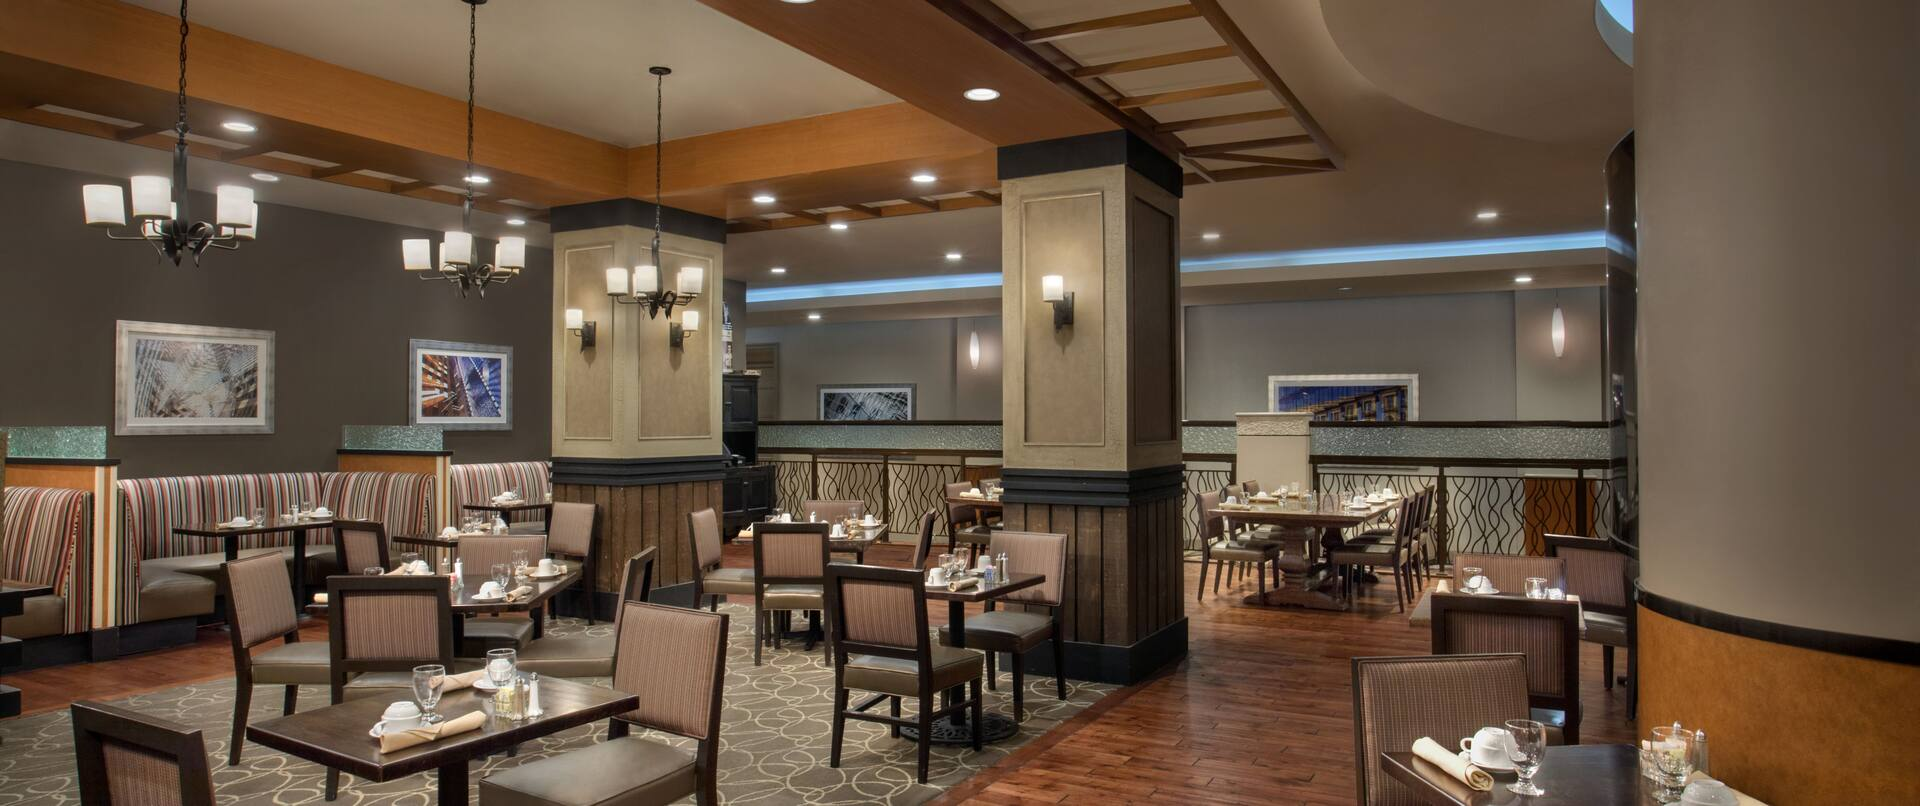 Sonoma Grill Restaurant Seating